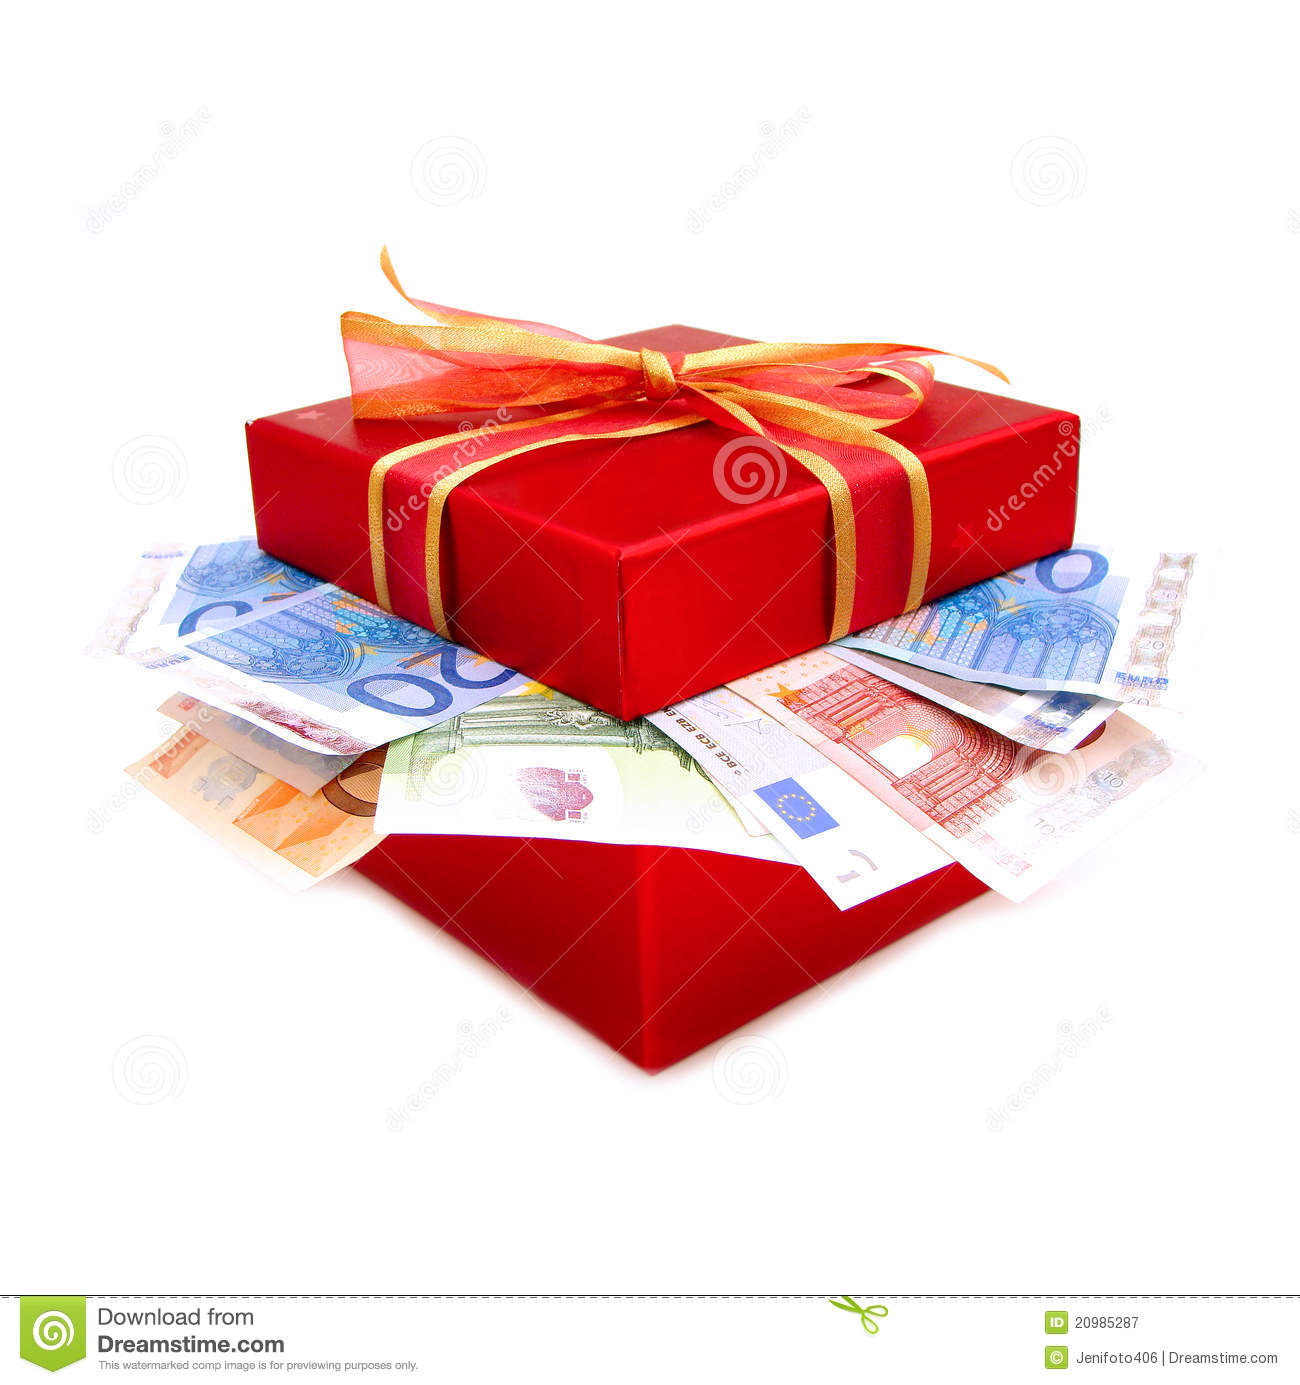 Image result for free image of spending at christmas